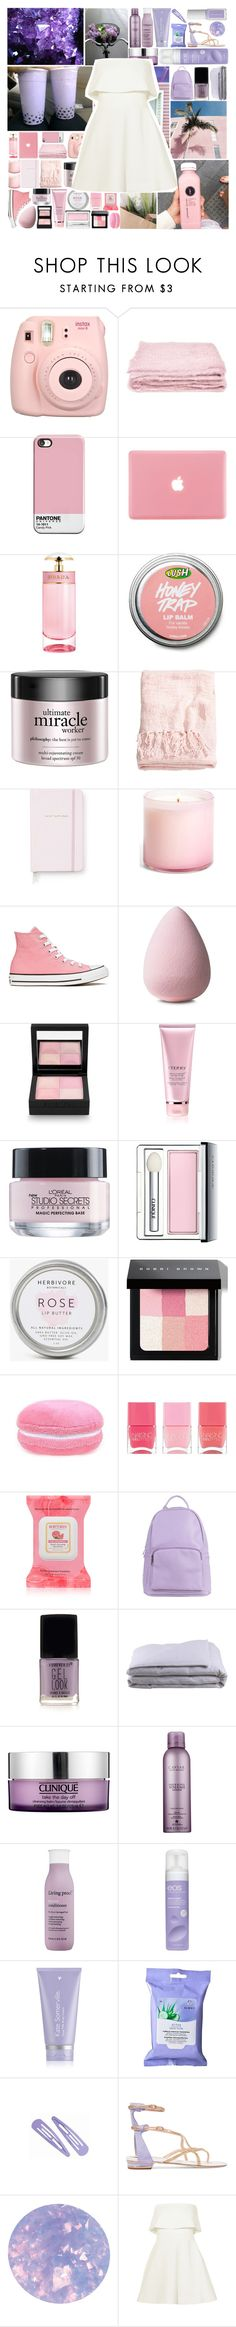 """Come On Come on Turn The Radio On//Ivory and Claire"" by clairexivory ❤ liked on Polyvore featuring abcDNA, Prada, philosophy, H&M, Kate Spade, LAFCO, Converse, Givenchy, By Terry and L'Oréal Paris"